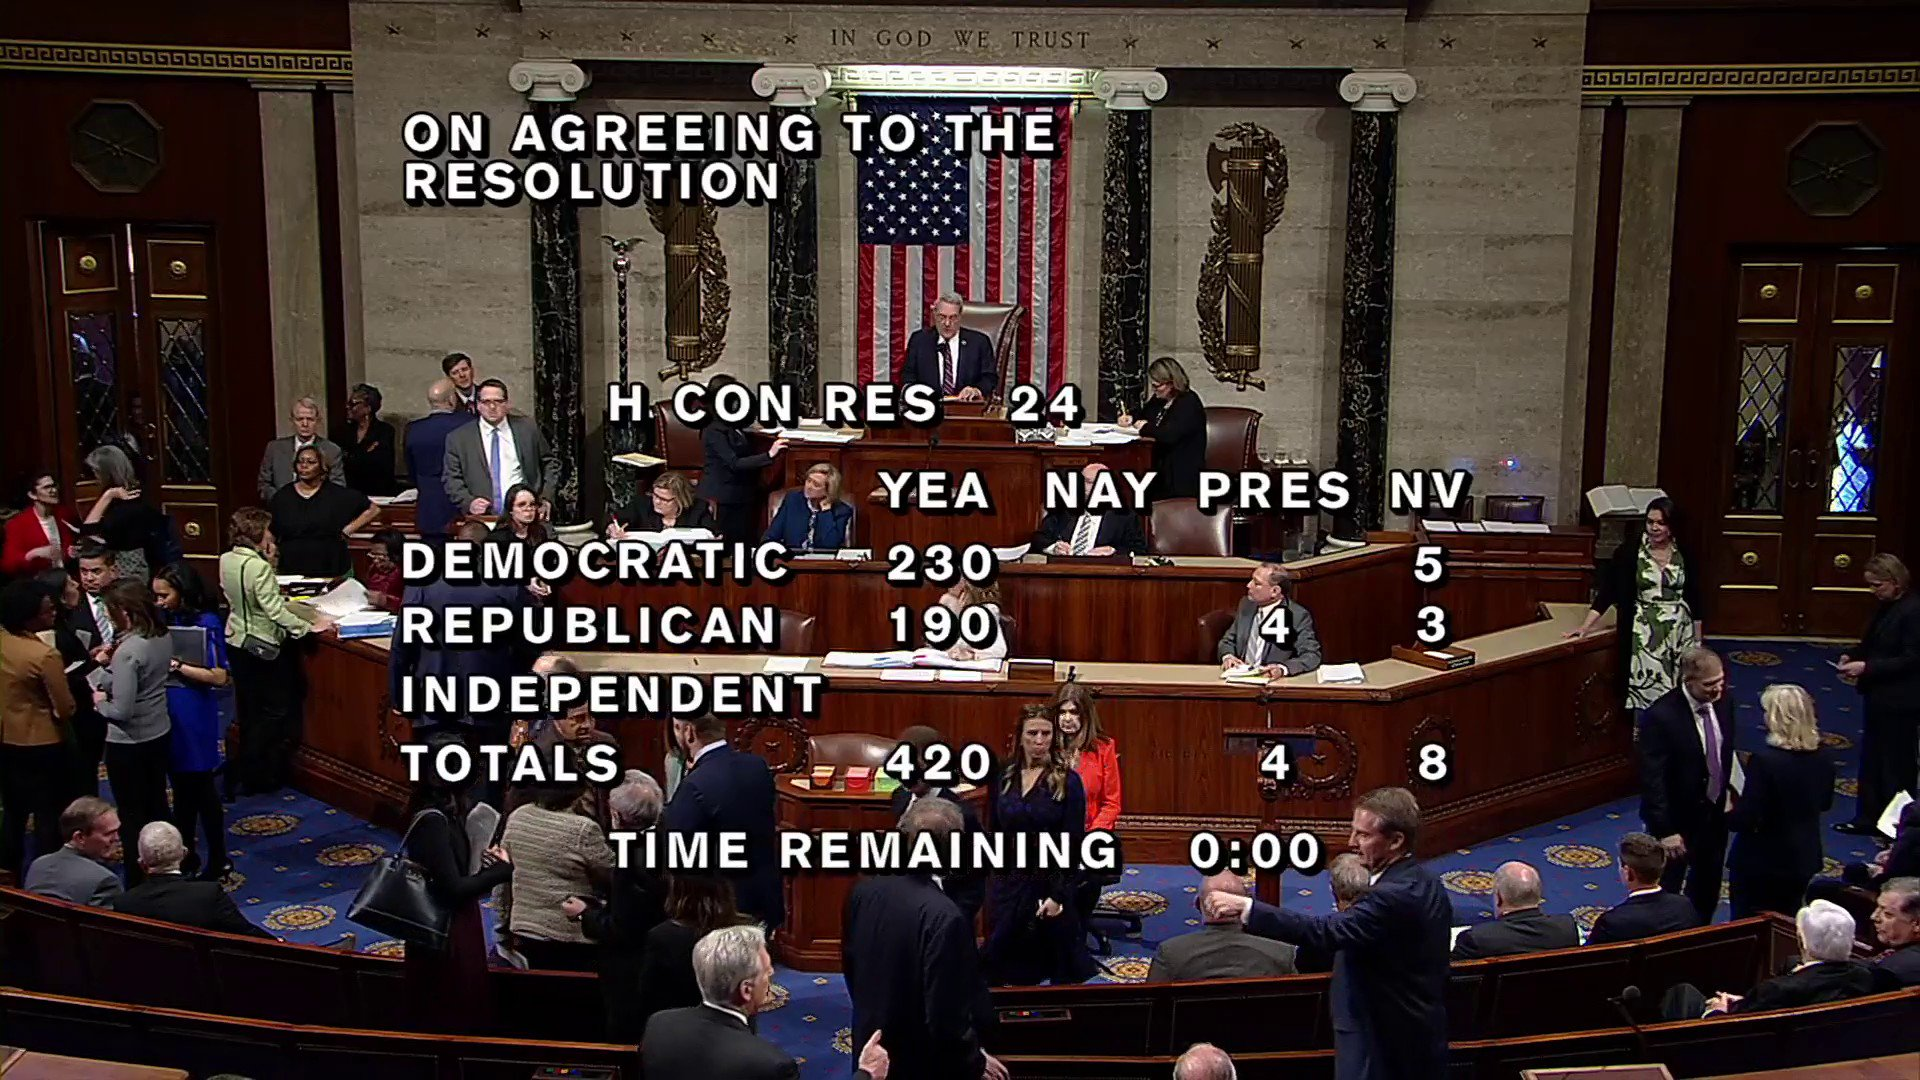 JUST IN: In 420-0 vote, House passes non-binding resolution that calls for the public release of the Mueller report. https://t.co/GmTwNbUqiF